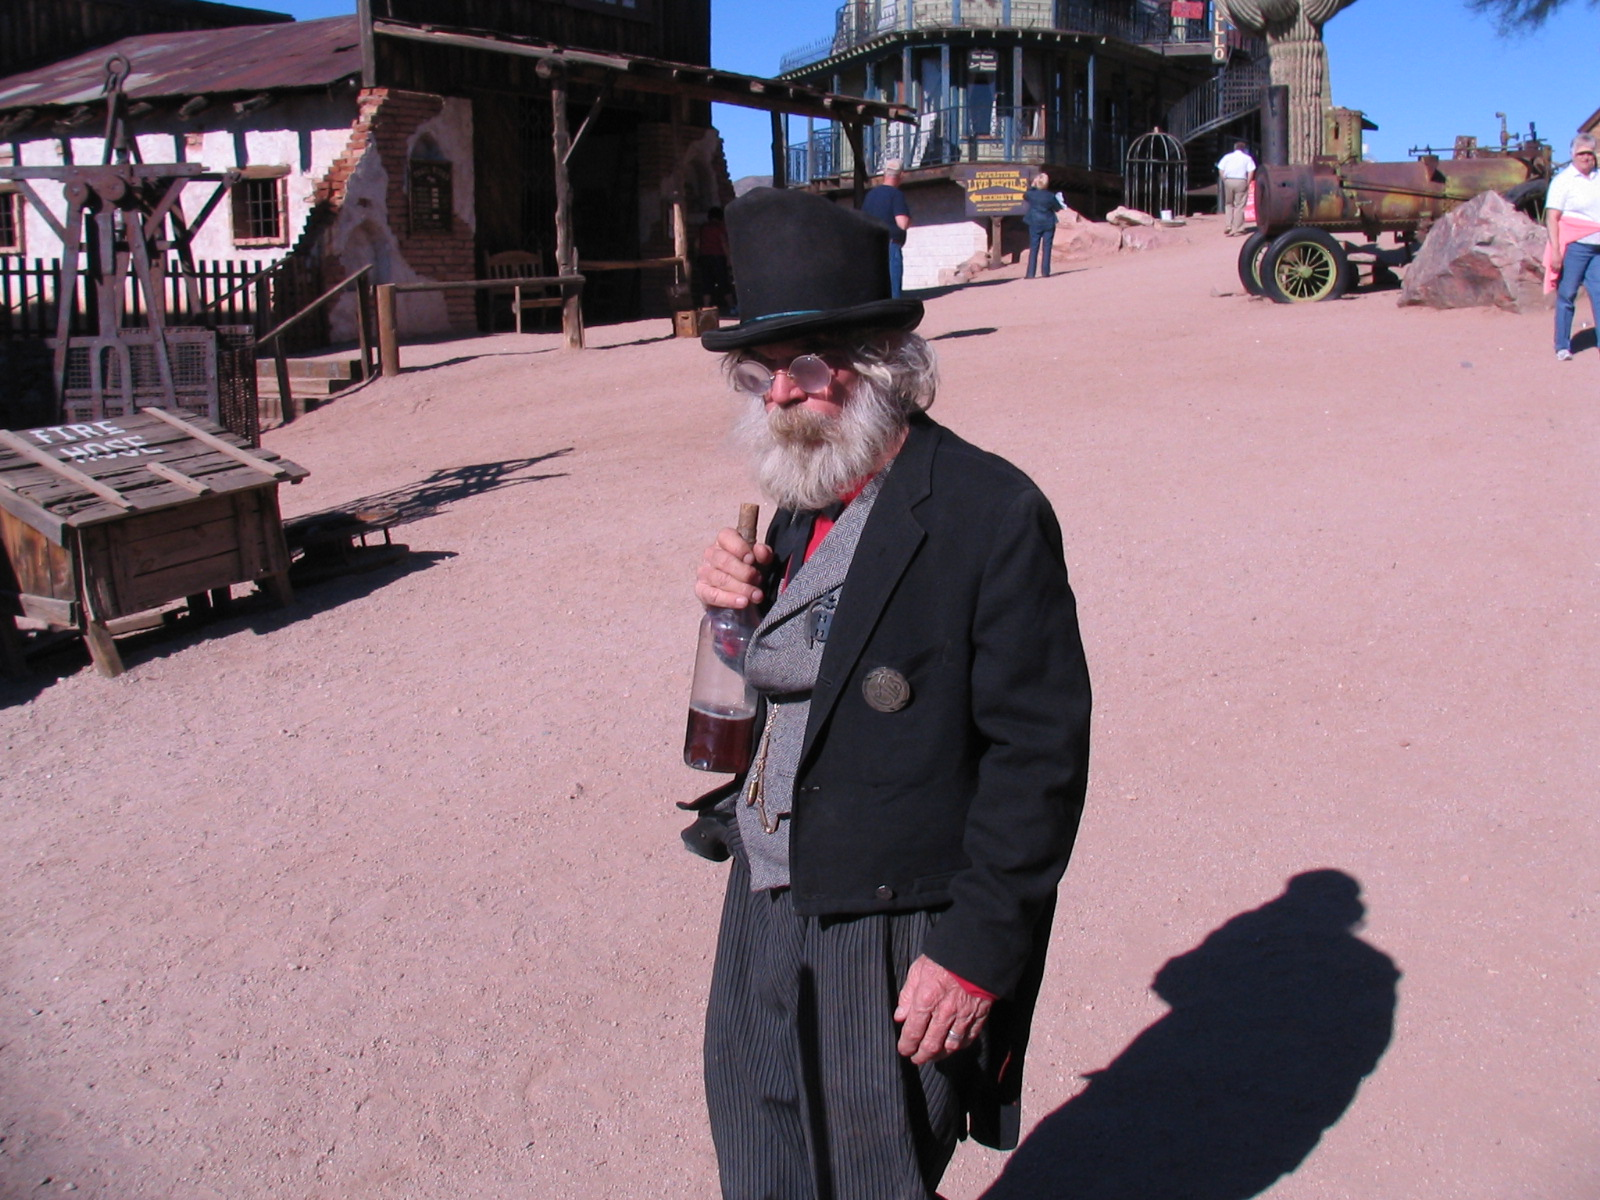 New Years 2012 - Goldfield